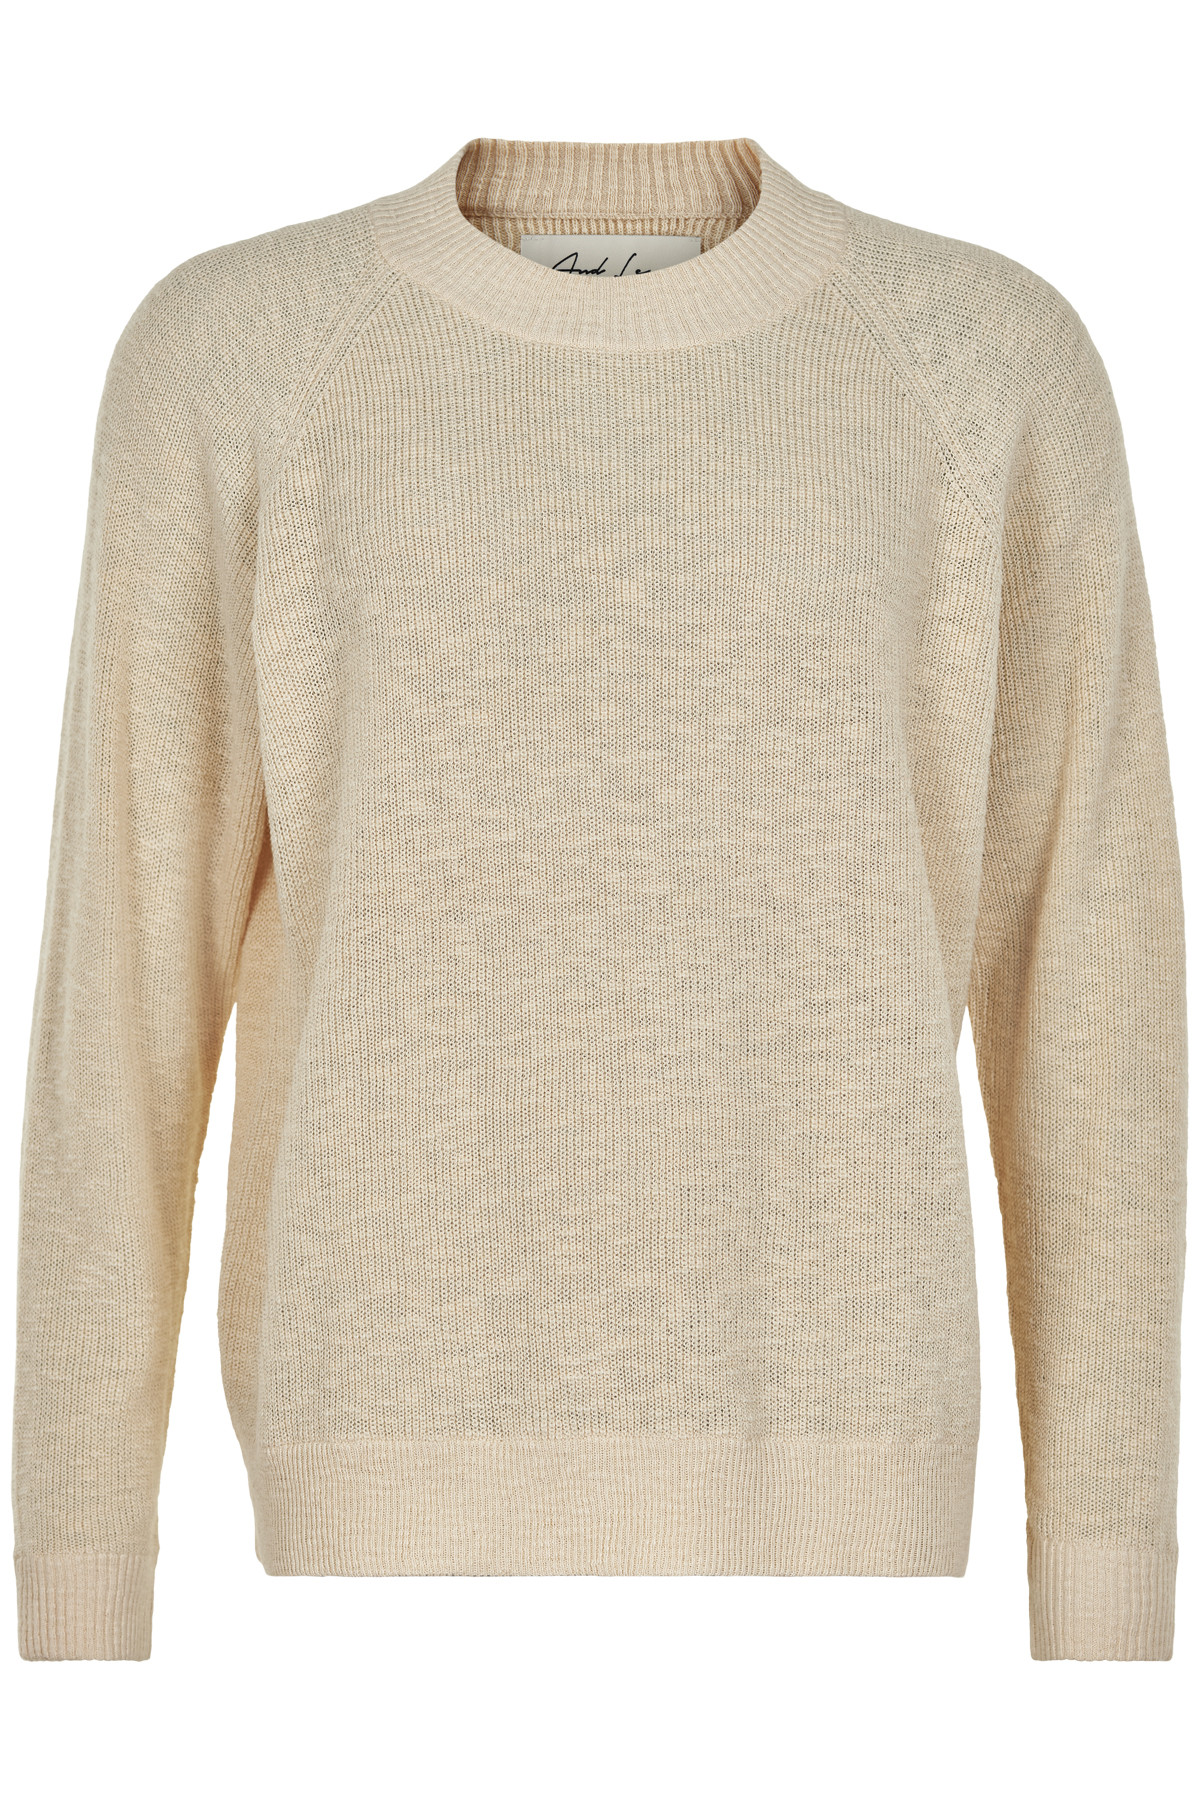 Image of   AND LESS ALBAMBINA PULLOVER 5220201 9504 (Birch, S)